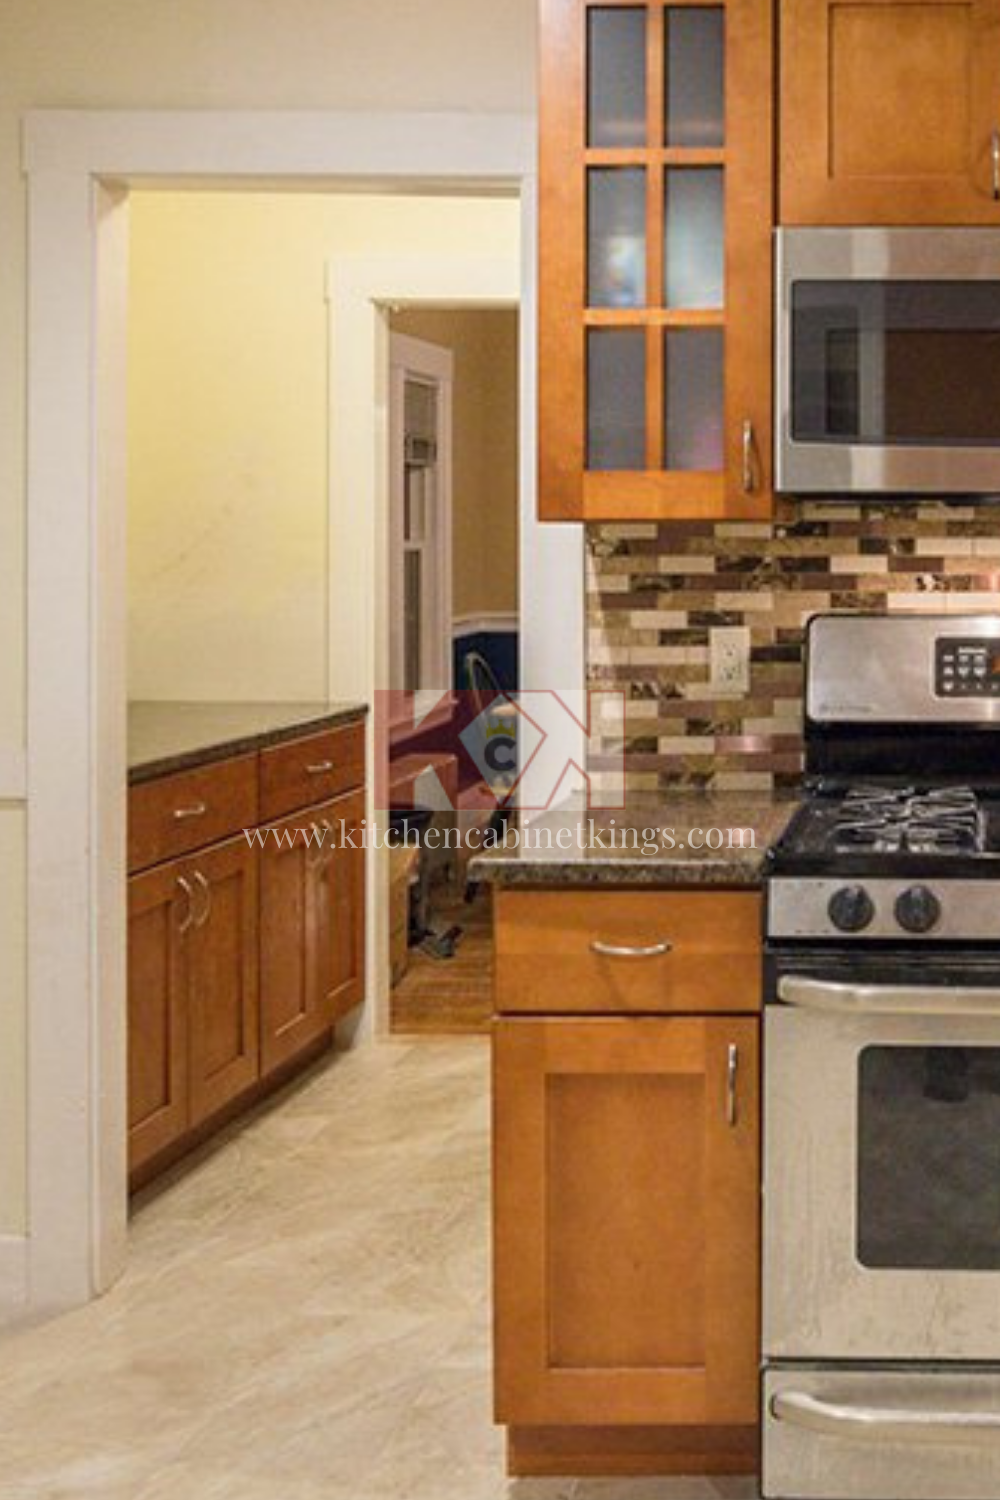 Newport Kitchen Cabinets You Can Purchase Online In 2020 Assembled Kitchen Cabinets Online Kitchen Cabinets Kitchen Cabinets